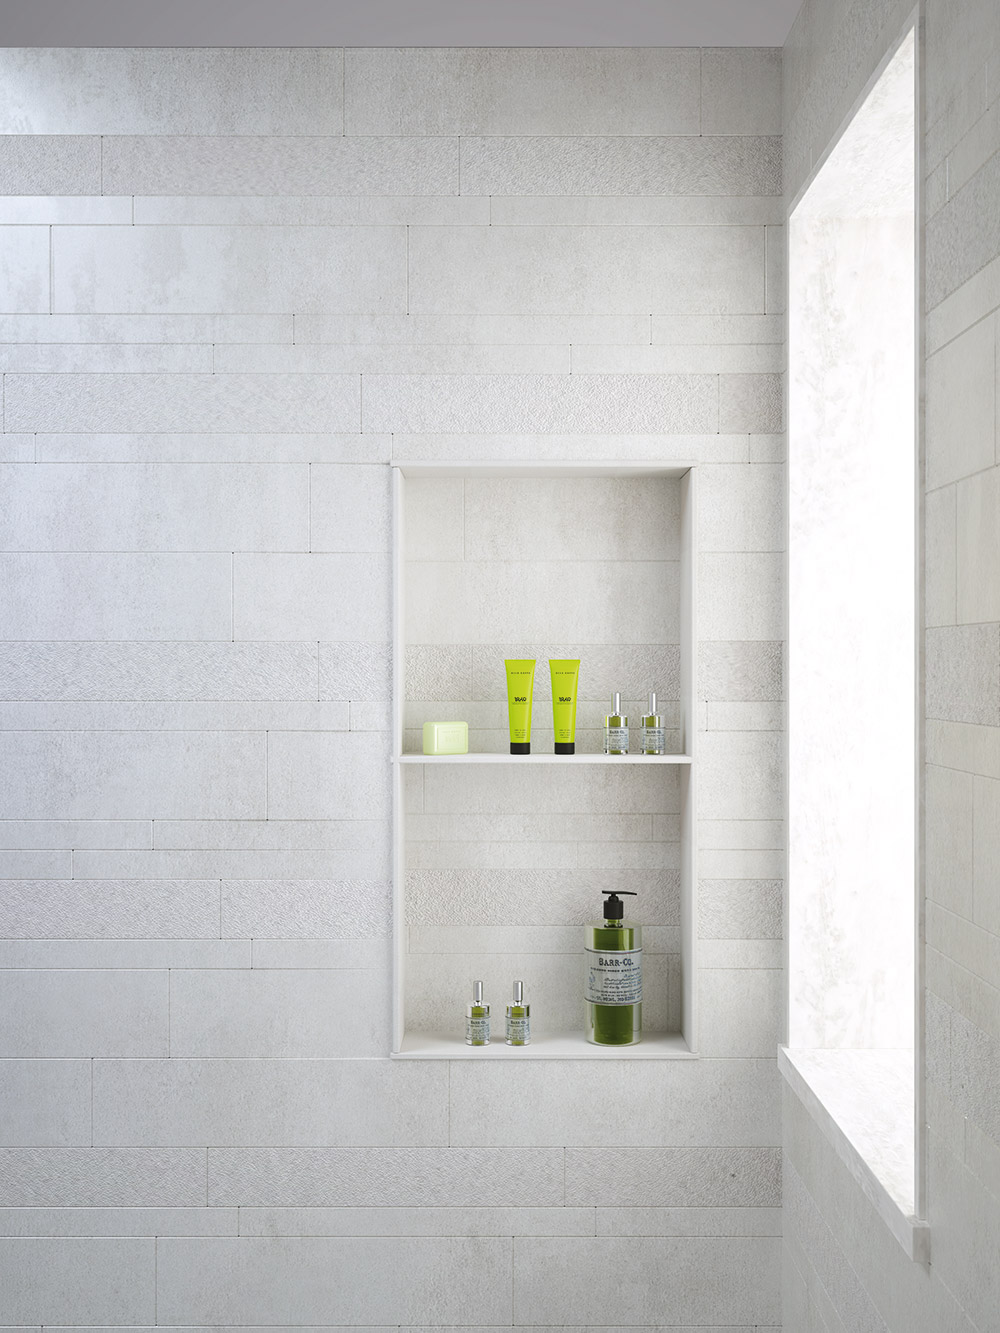 Bathroom Tiles Made in Italy: Discover DSG Ceramic tiles